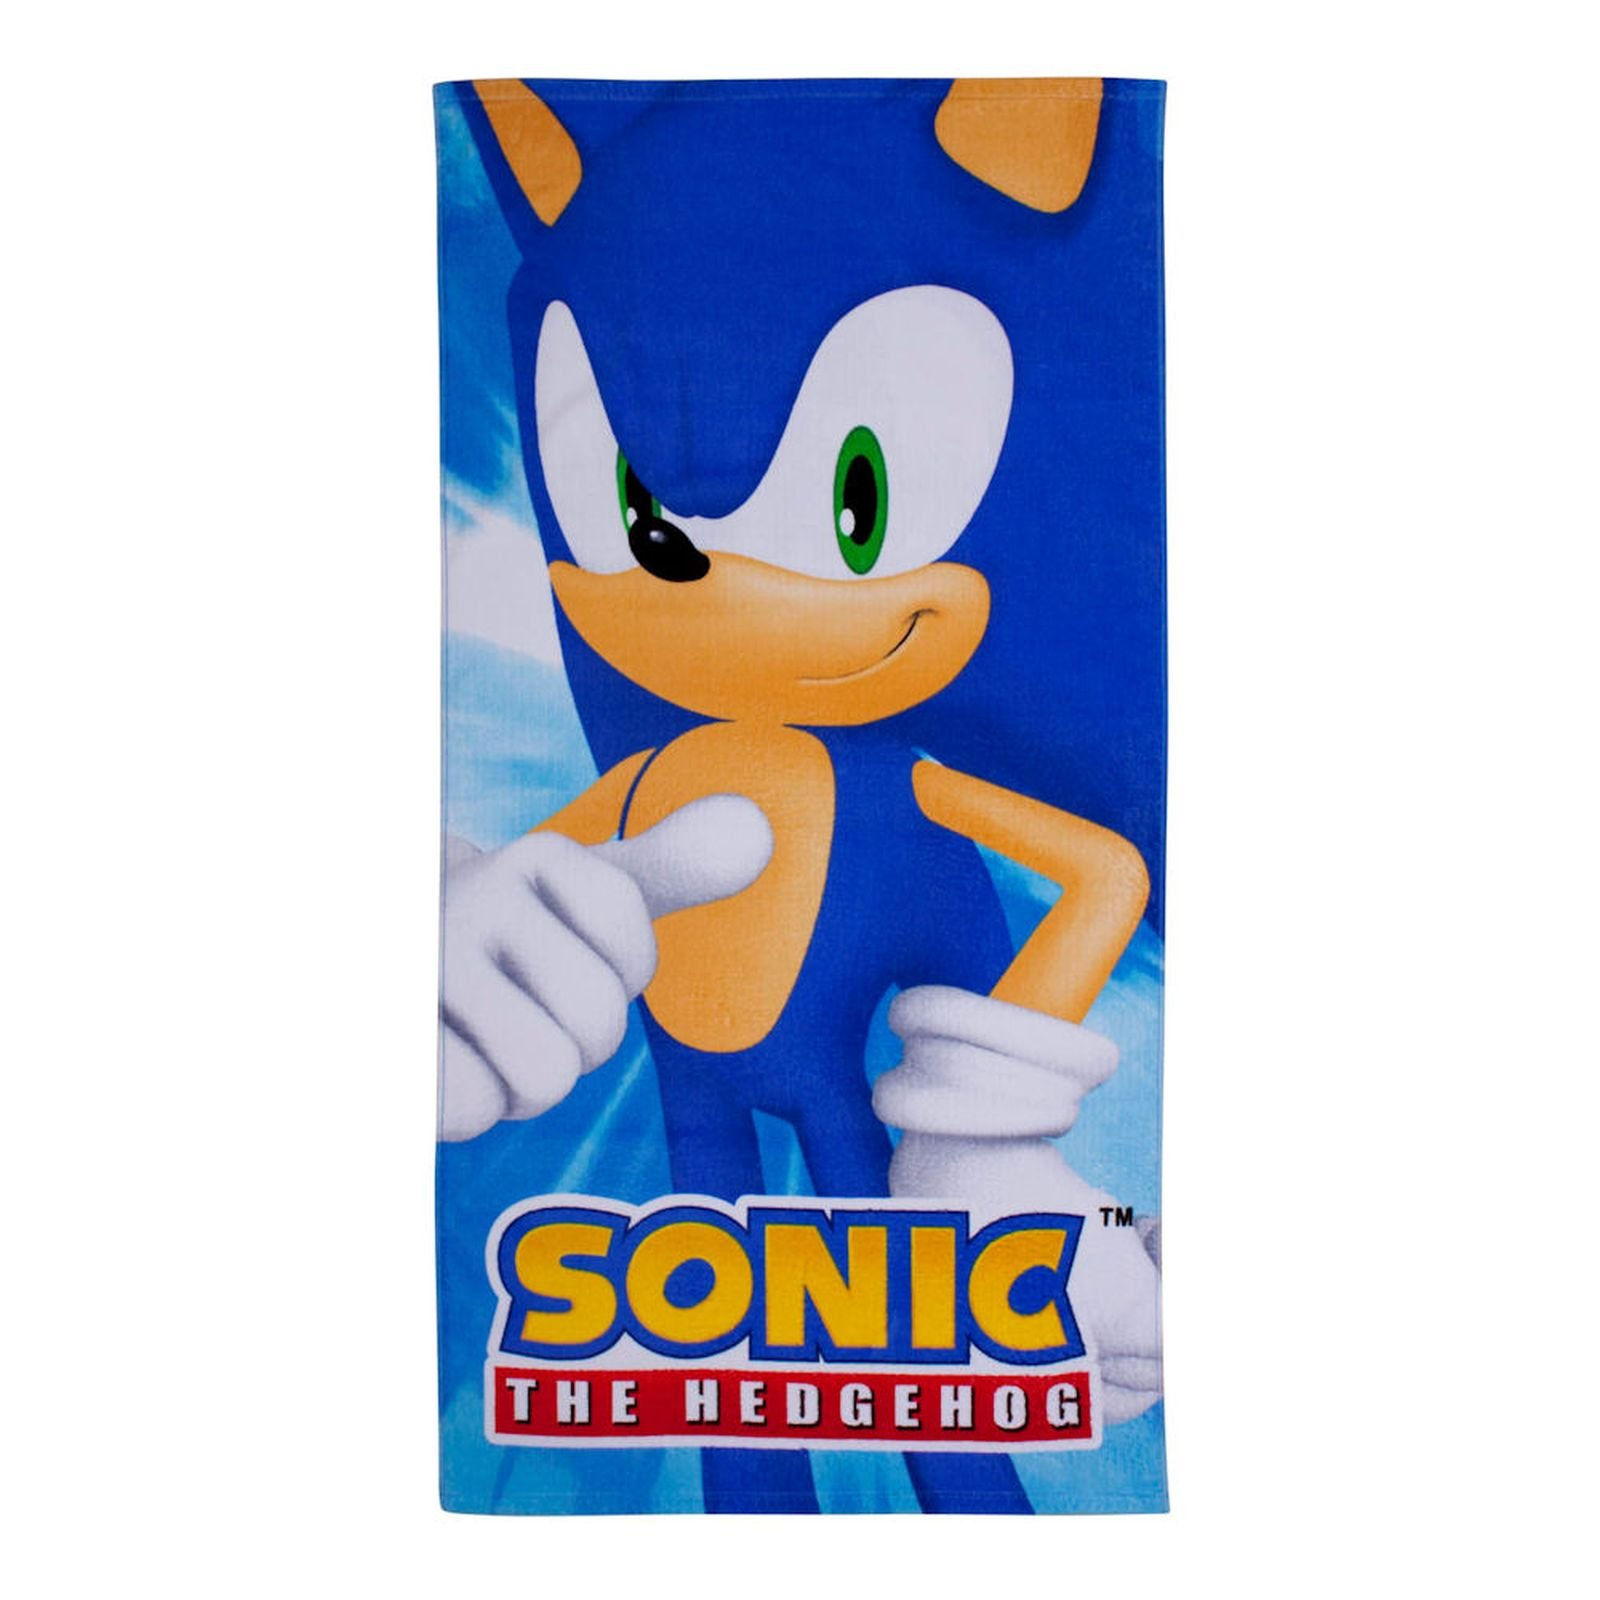 Sonic The Hedgehog Spin Beach Towel Printed 100 Cotton Buy Online In Cayman Islands Character World Products In Cayman Islands See Prices Reviews And Free Delivery Over Ci 60 Desertcart